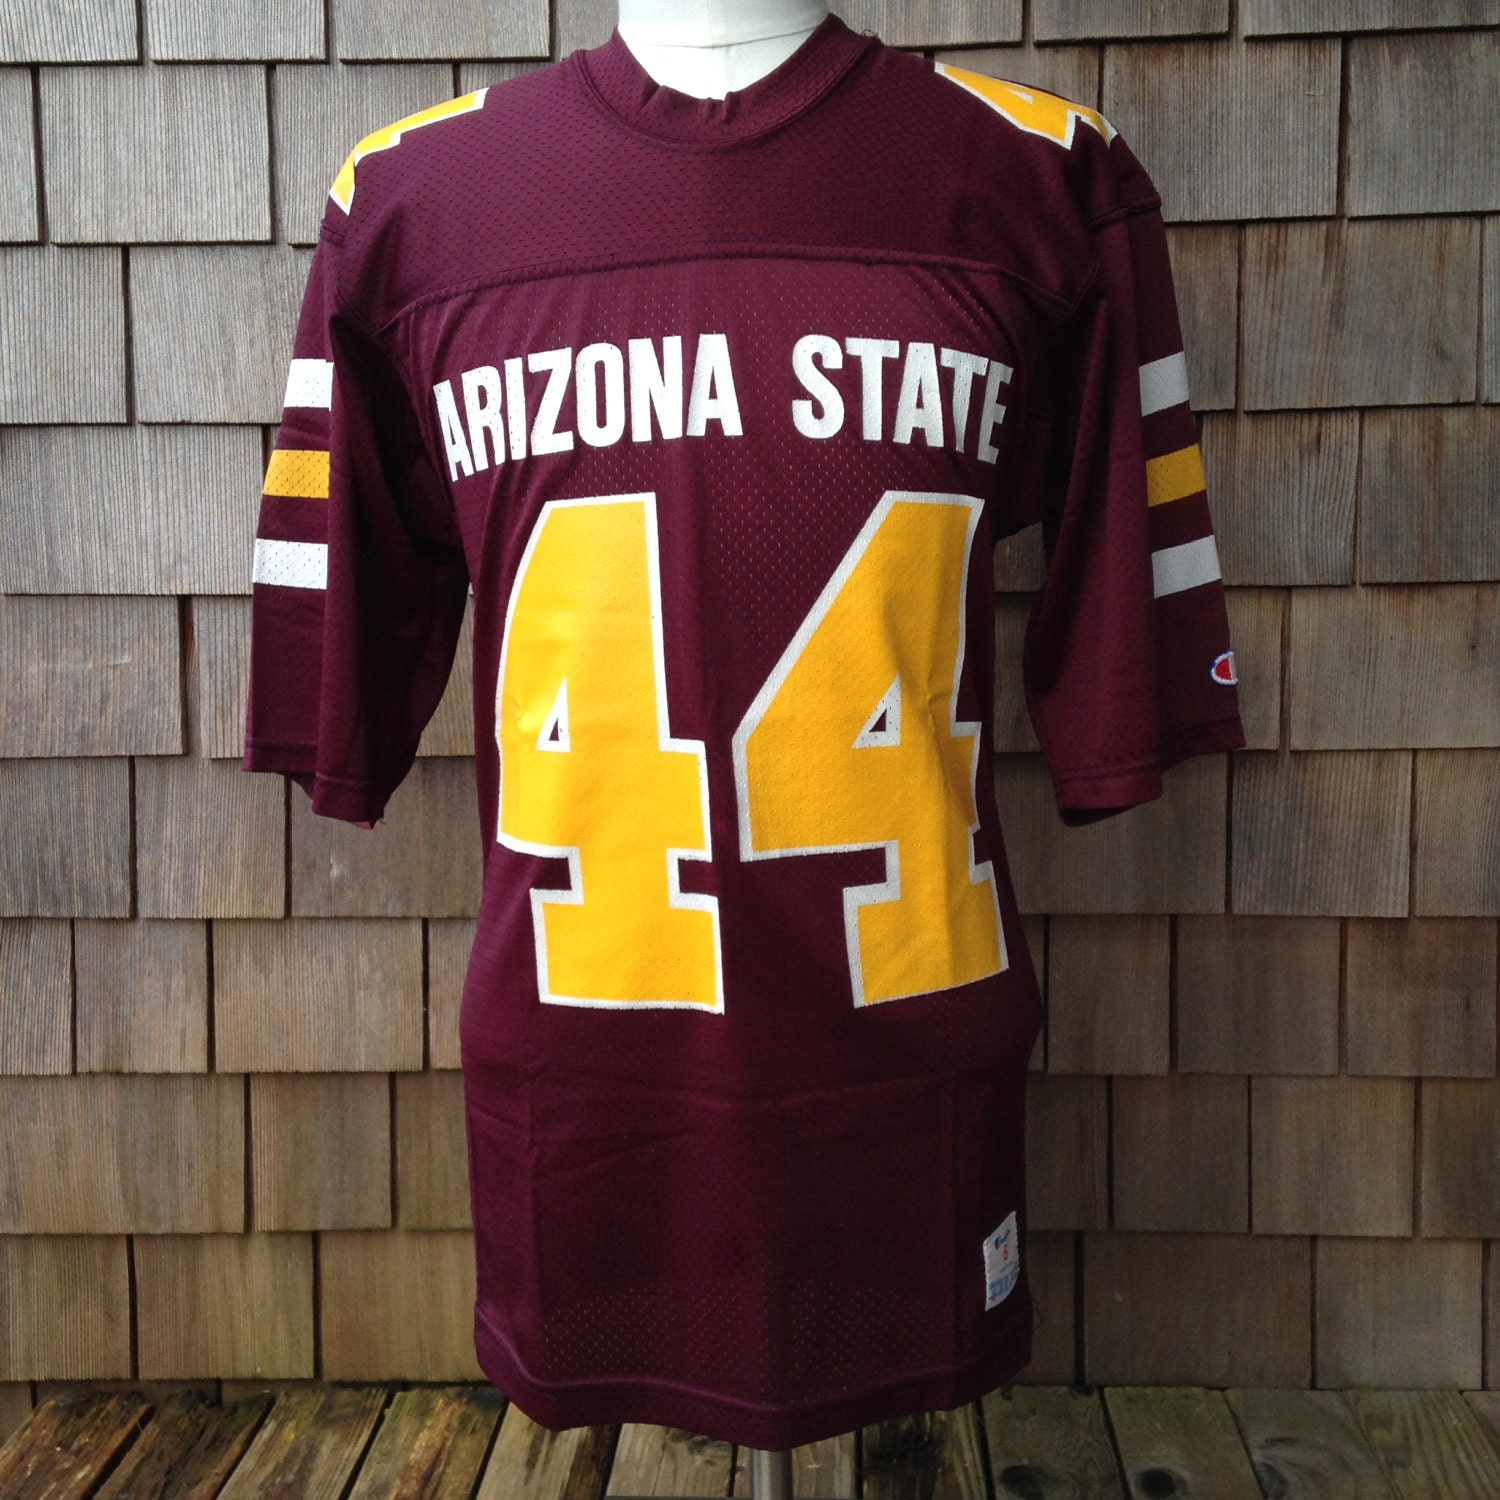 Vintage 80s ARIZONA STATE Sun Devils Authentic Football Jersey #44 by Champion - Small - University 8sfTUvC